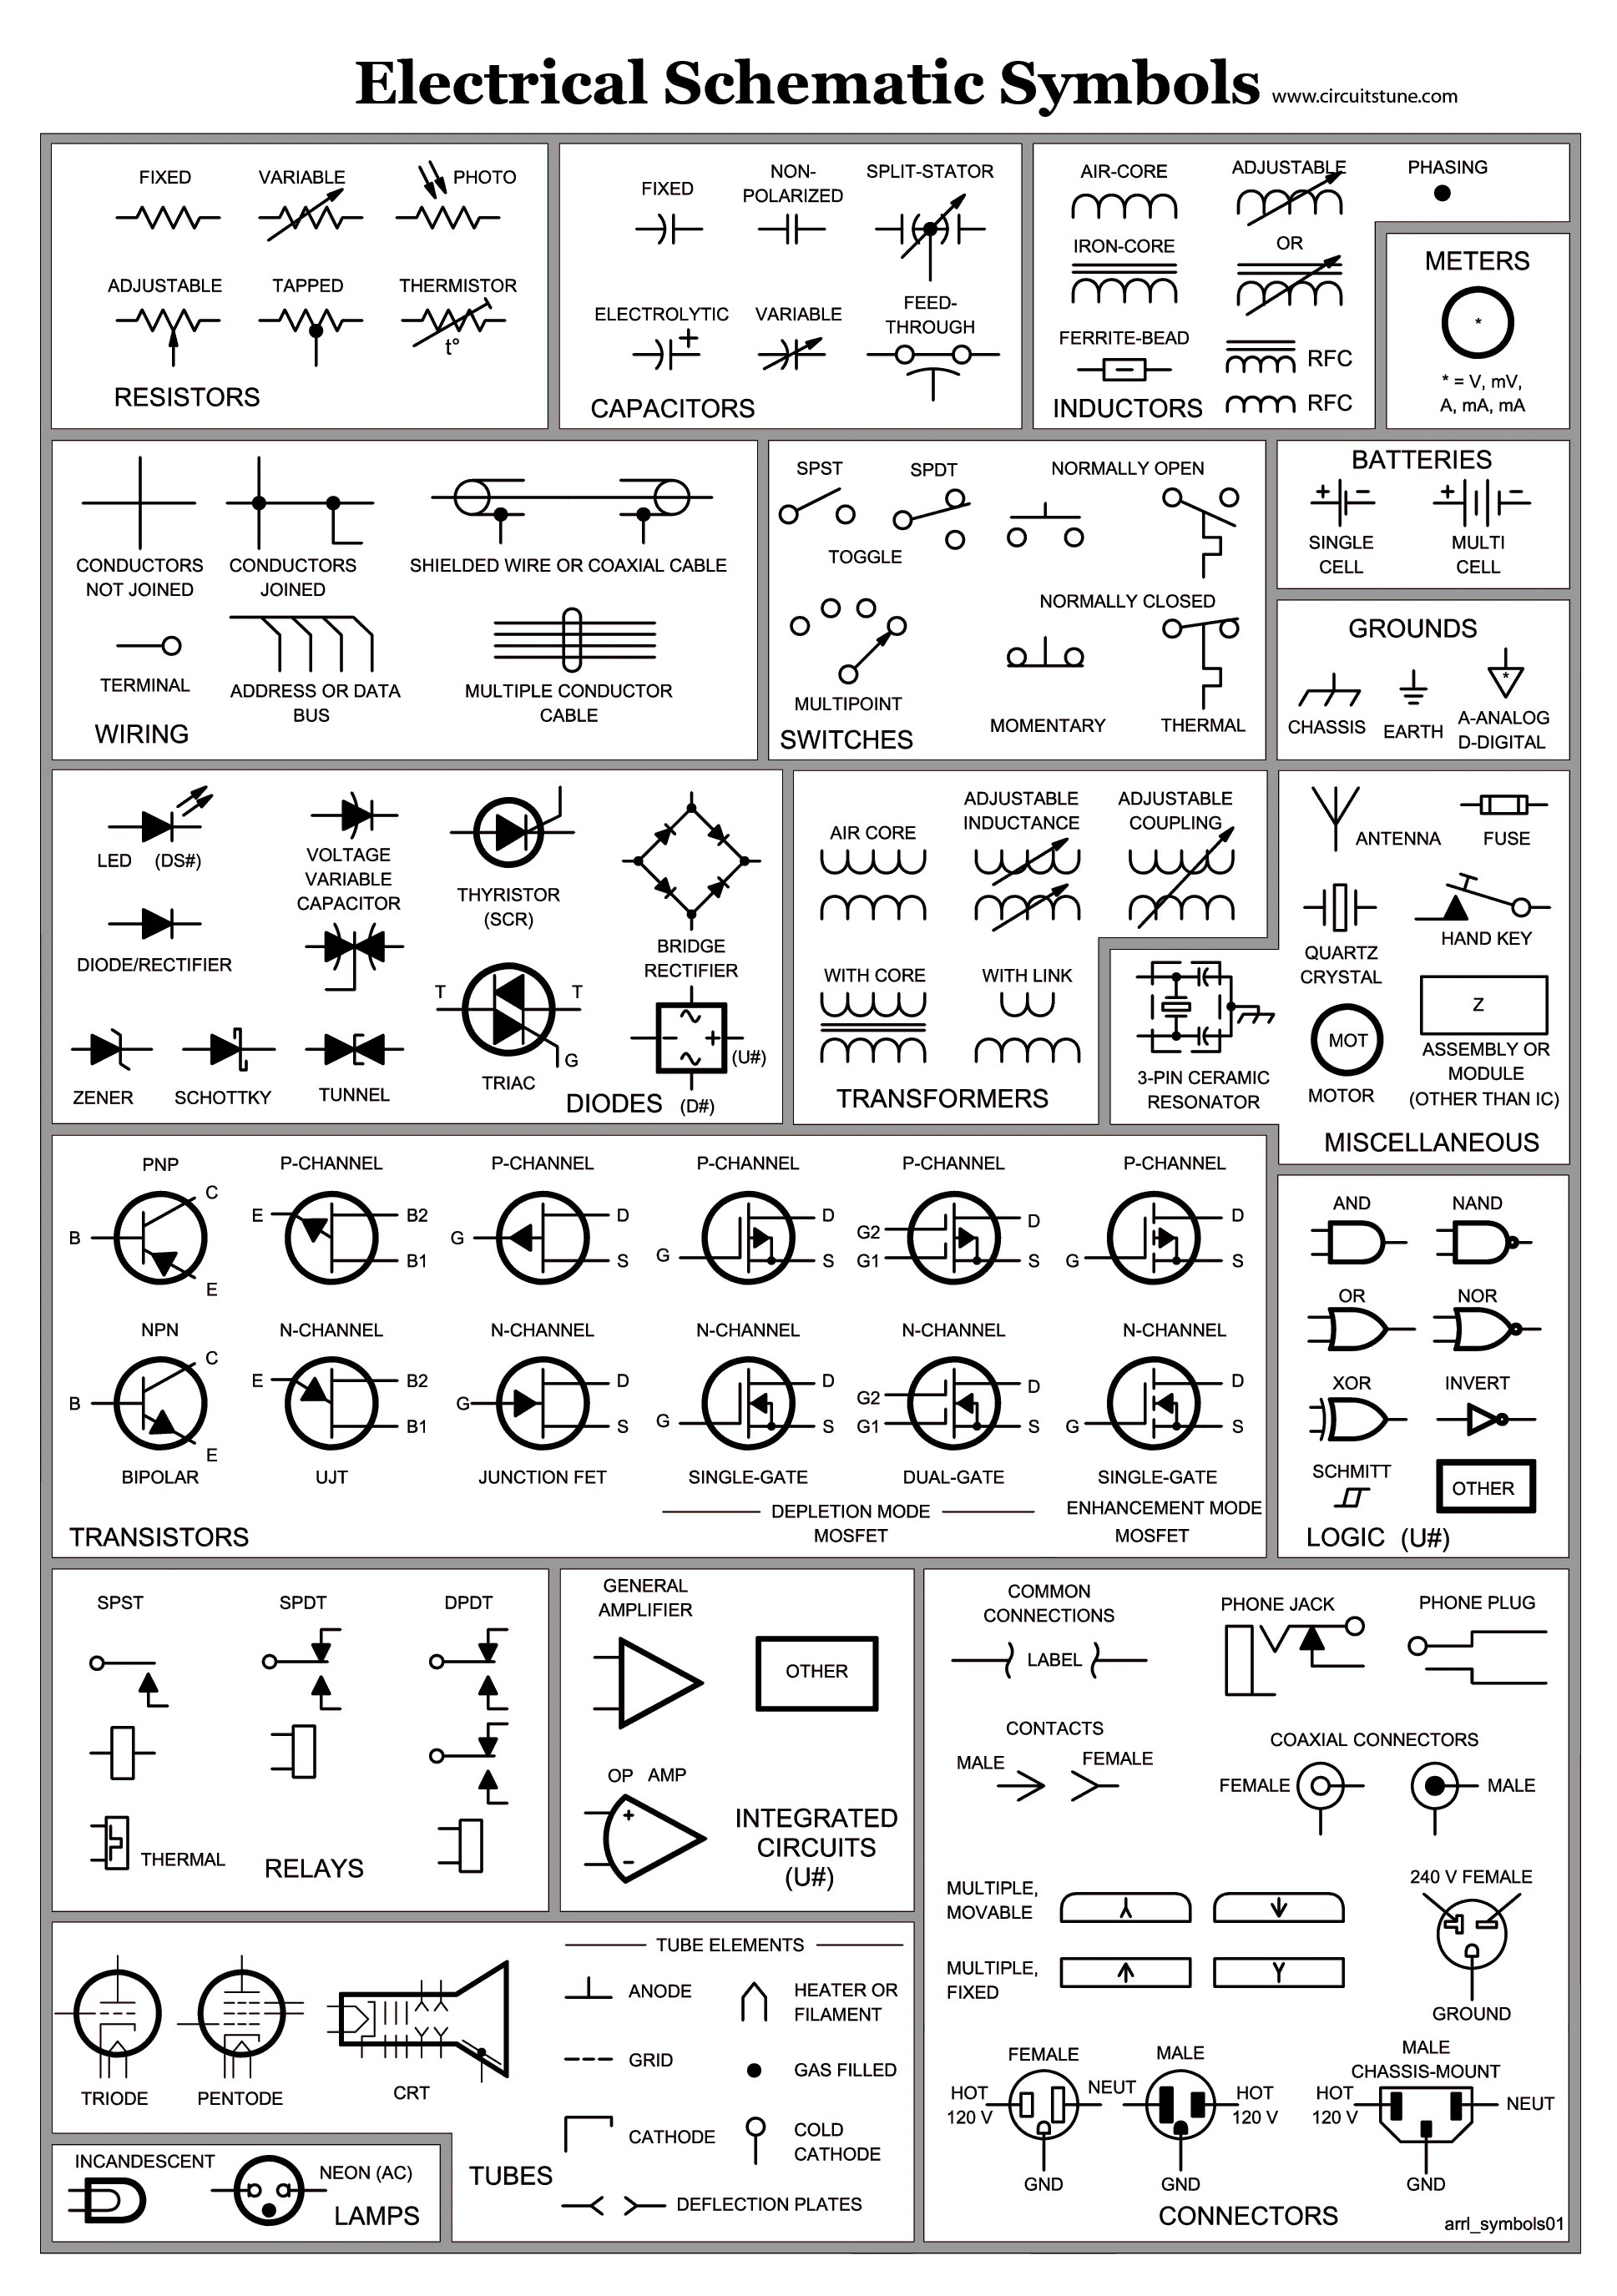 wiring for hvac in every symbol wiring diagram paper hvac schematic symbols [ 1937 x 2751 Pixel ]